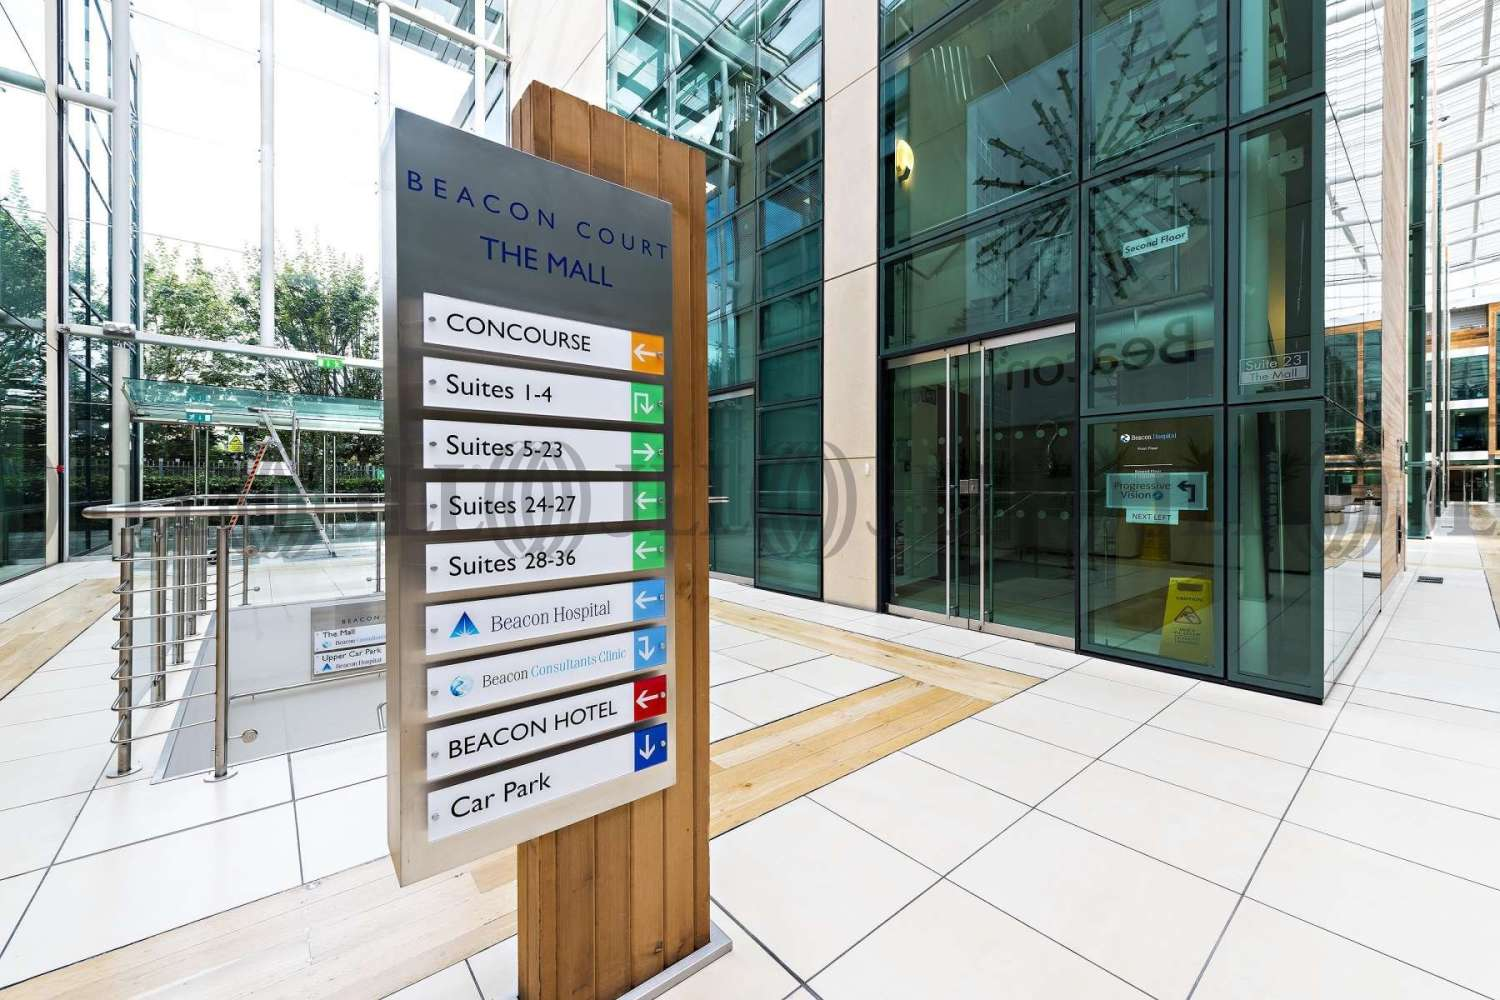 Investments Dublin 18, D18 TN80 - Suite 4, The Mall, Beacon Court